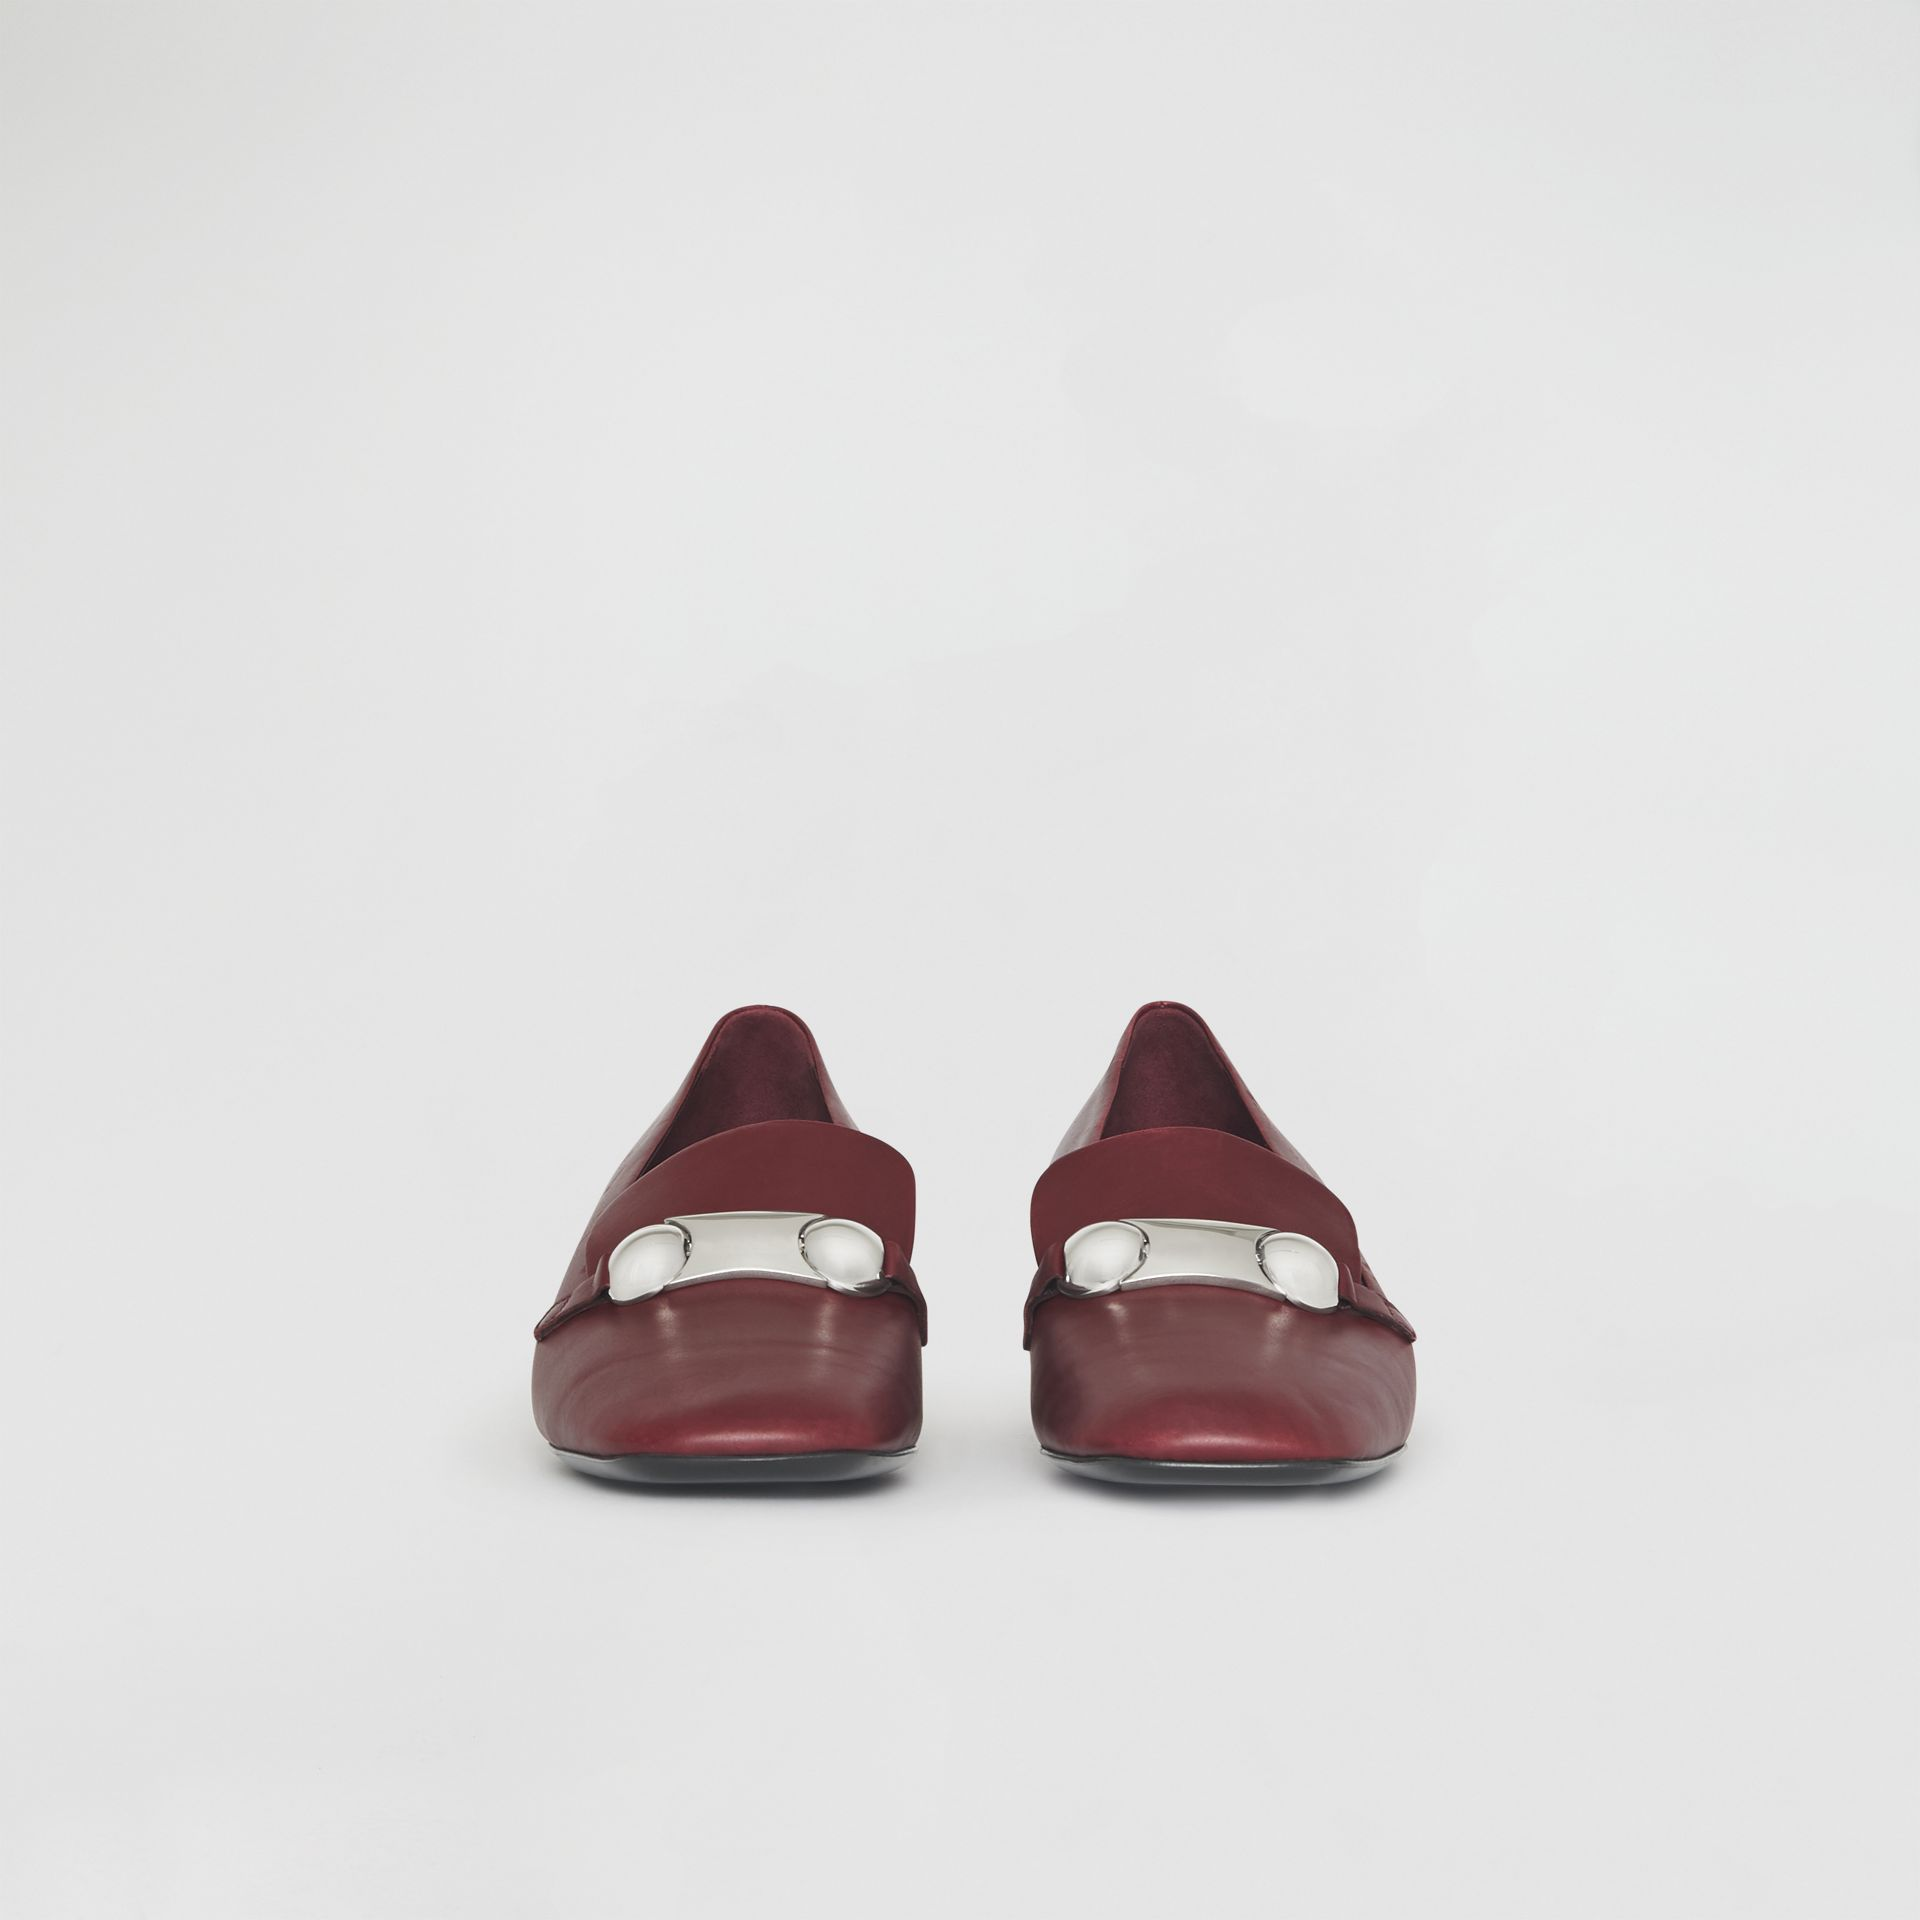 Studded Bar Detail Leather Pumps in Bordeaux - Women | Burberry - gallery image 3